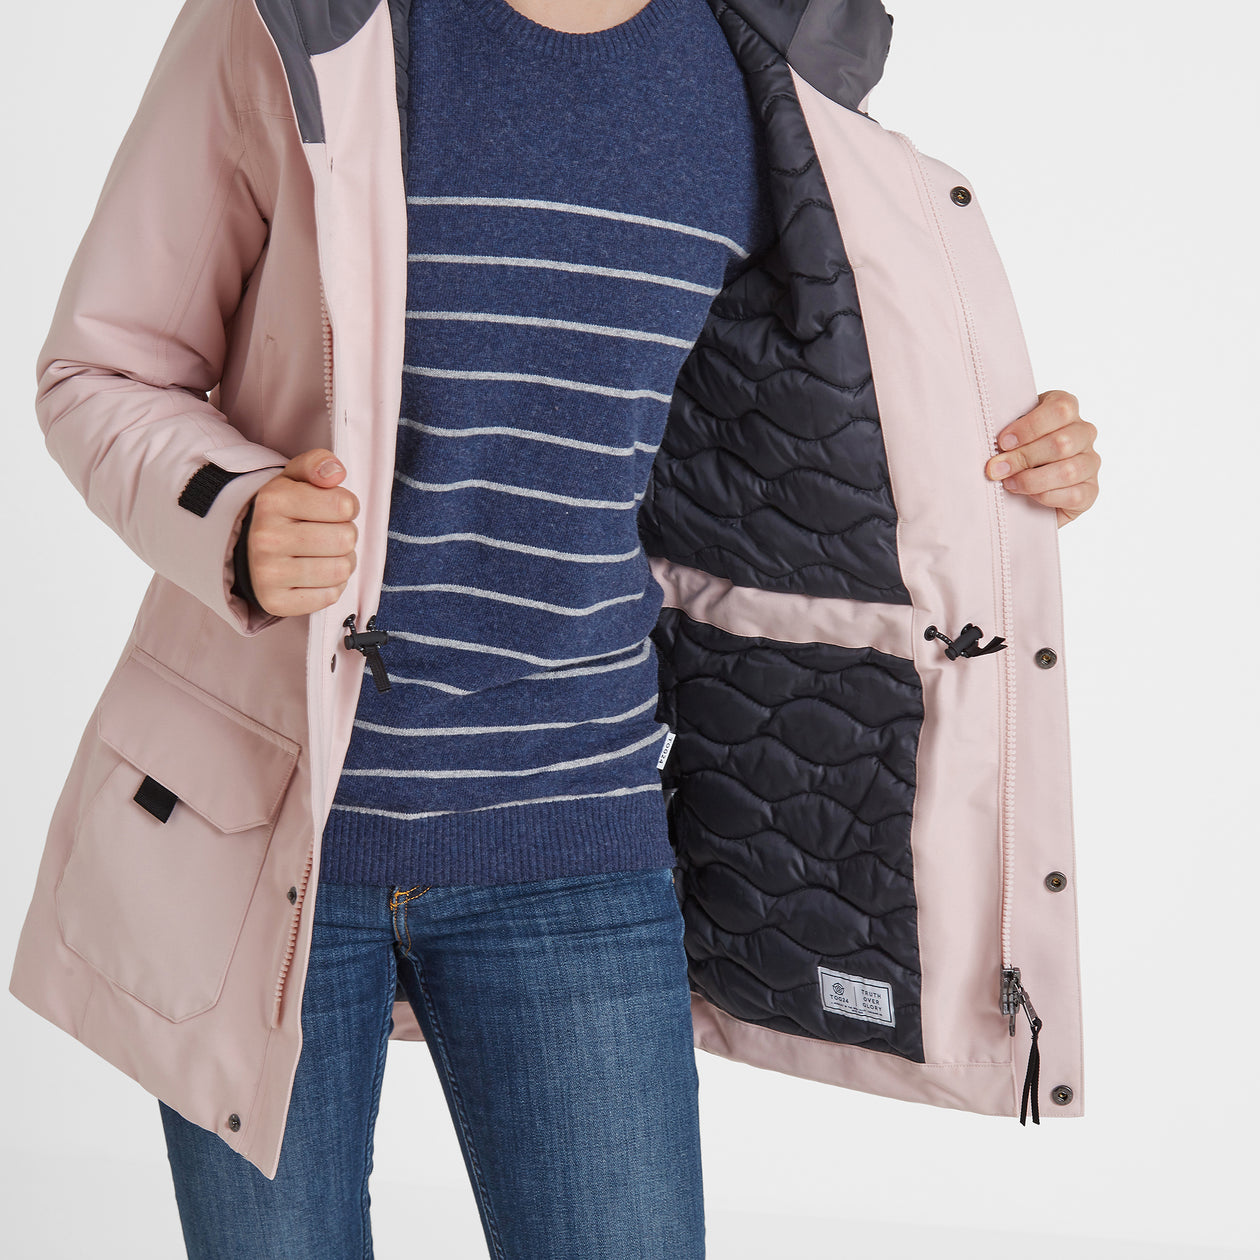 Dight Womens Waterproof Parka - Rose Pink image 4